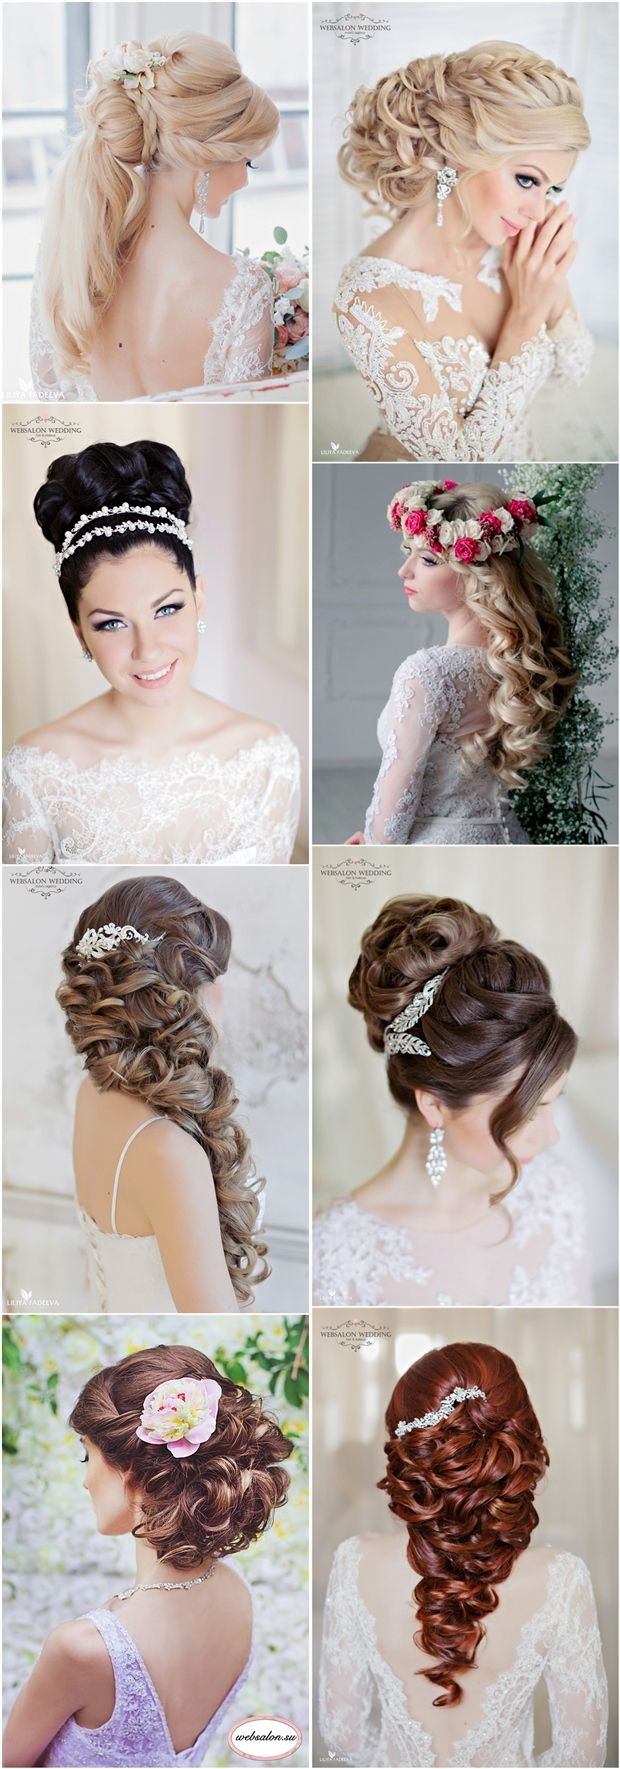 25+ best hairstyles for brides ideas on pinterest | elegant